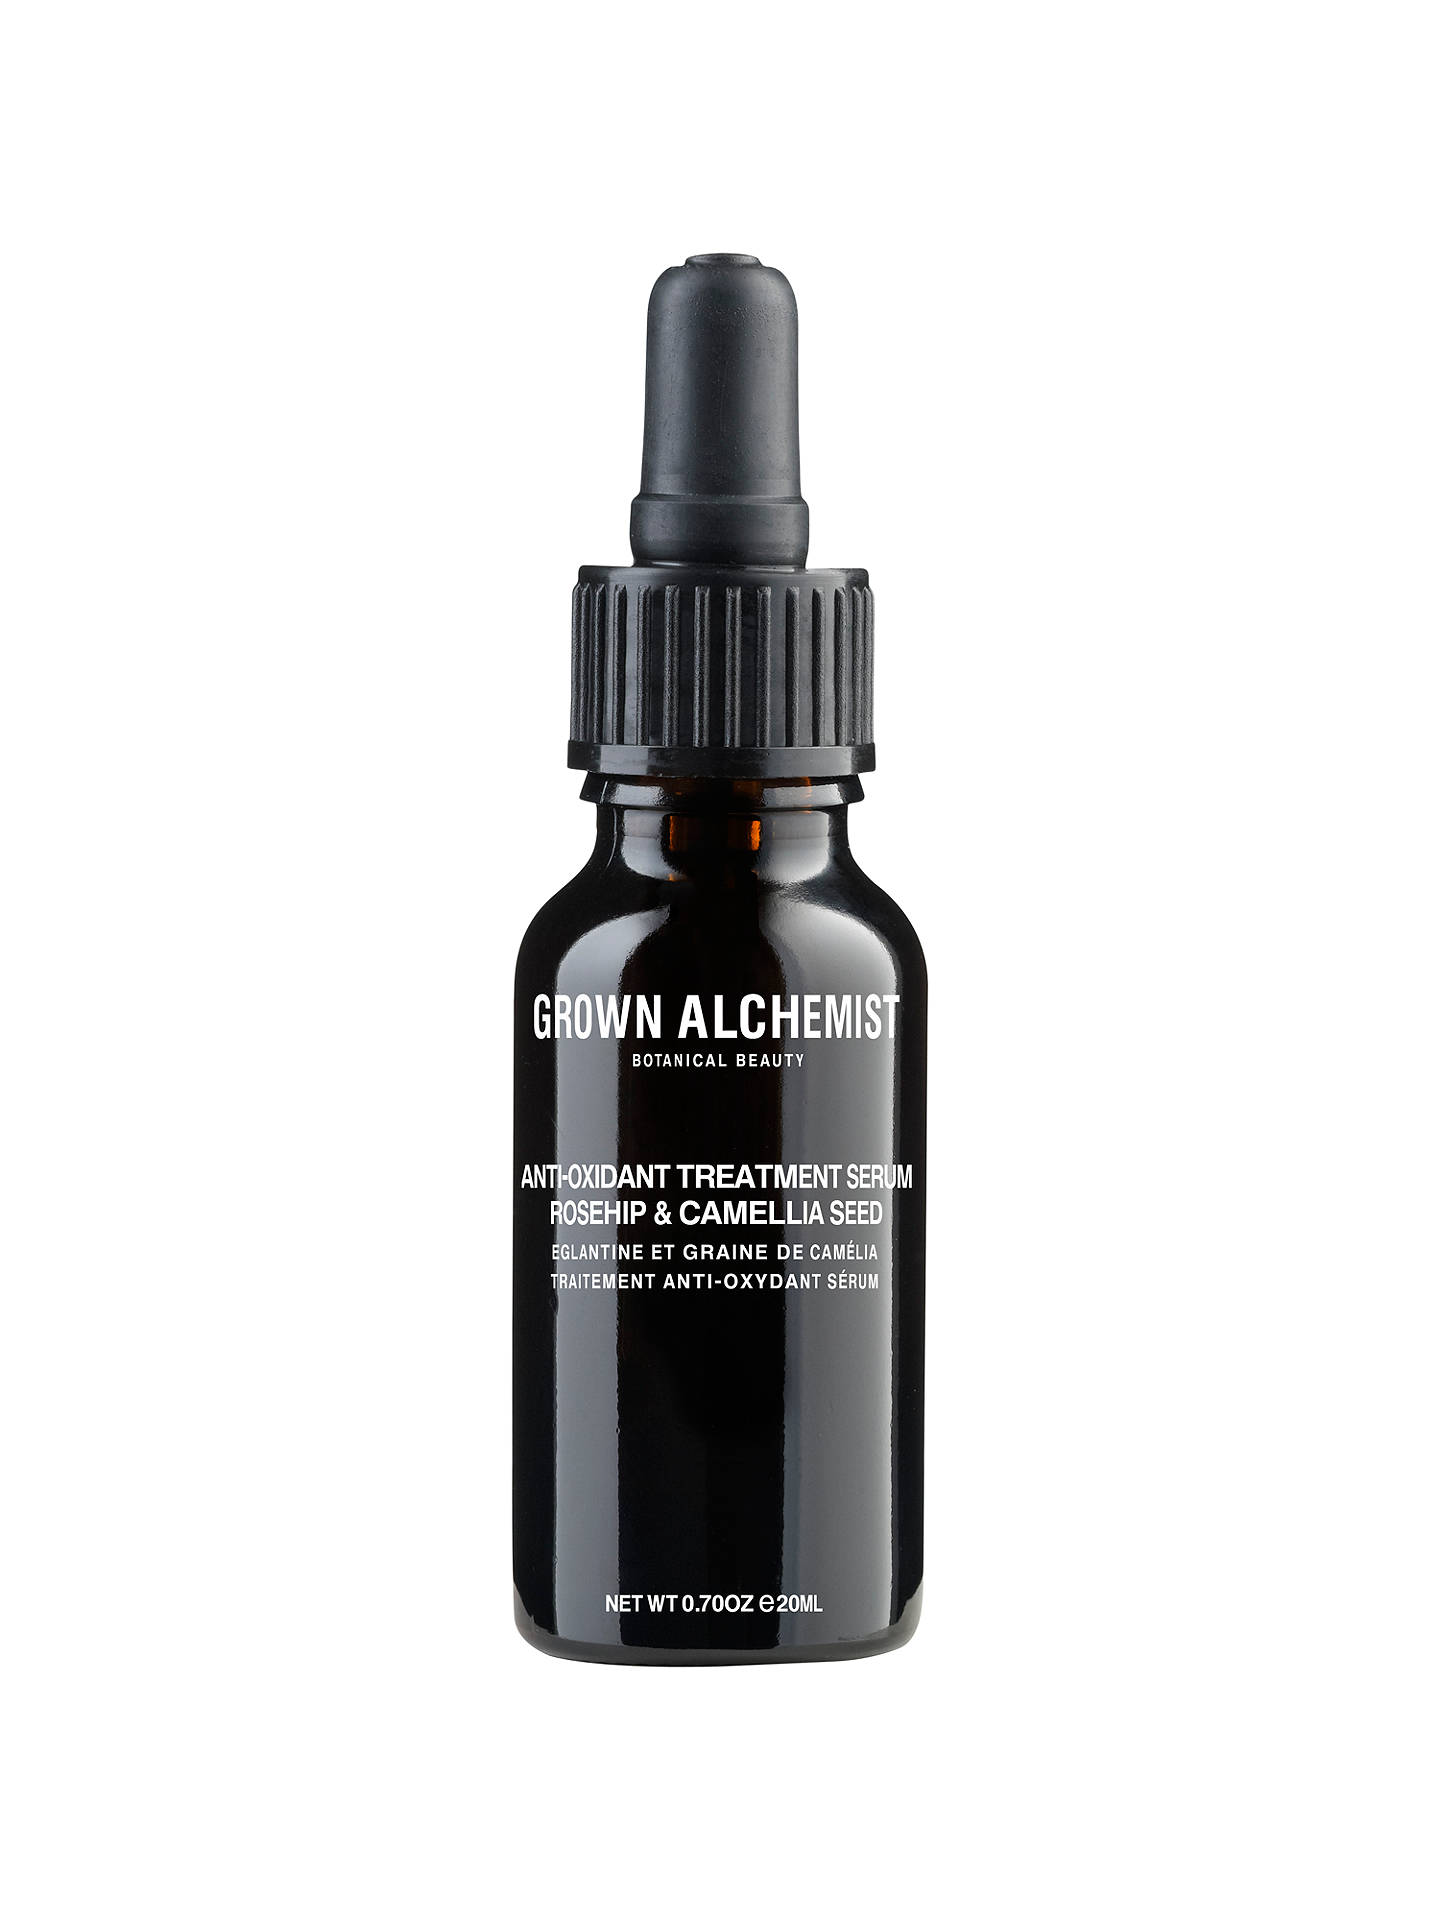 Buy Grown Alchemist Anti-Oxidant Treatment Serum: Rosehip & Camellia Seed, 20ml Online at johnlewis.com